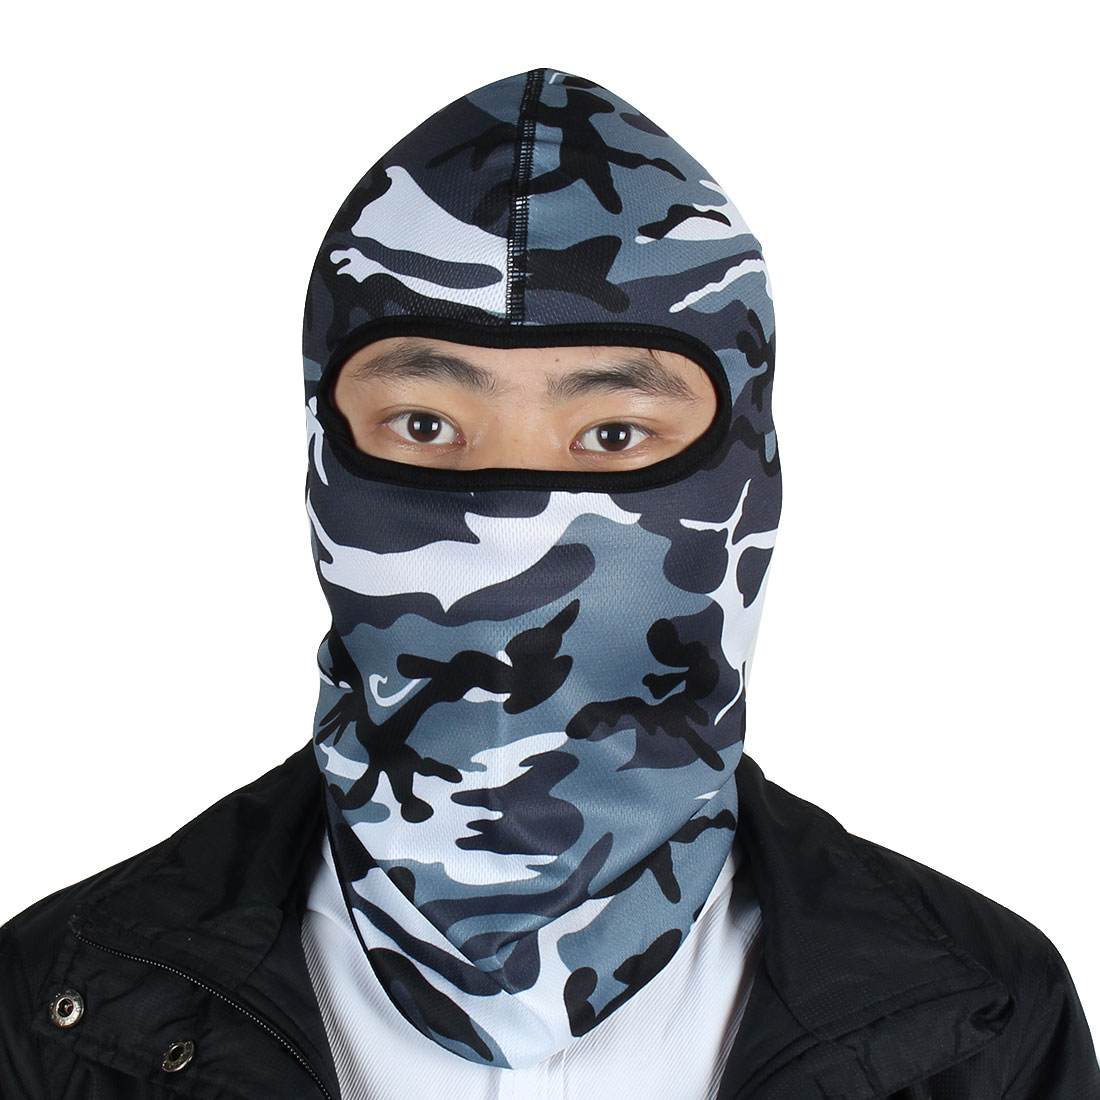 Outdoor Unisex Lycra Camouflage Design Hunting Neck Face Mask Head Cover Balaclava Hood